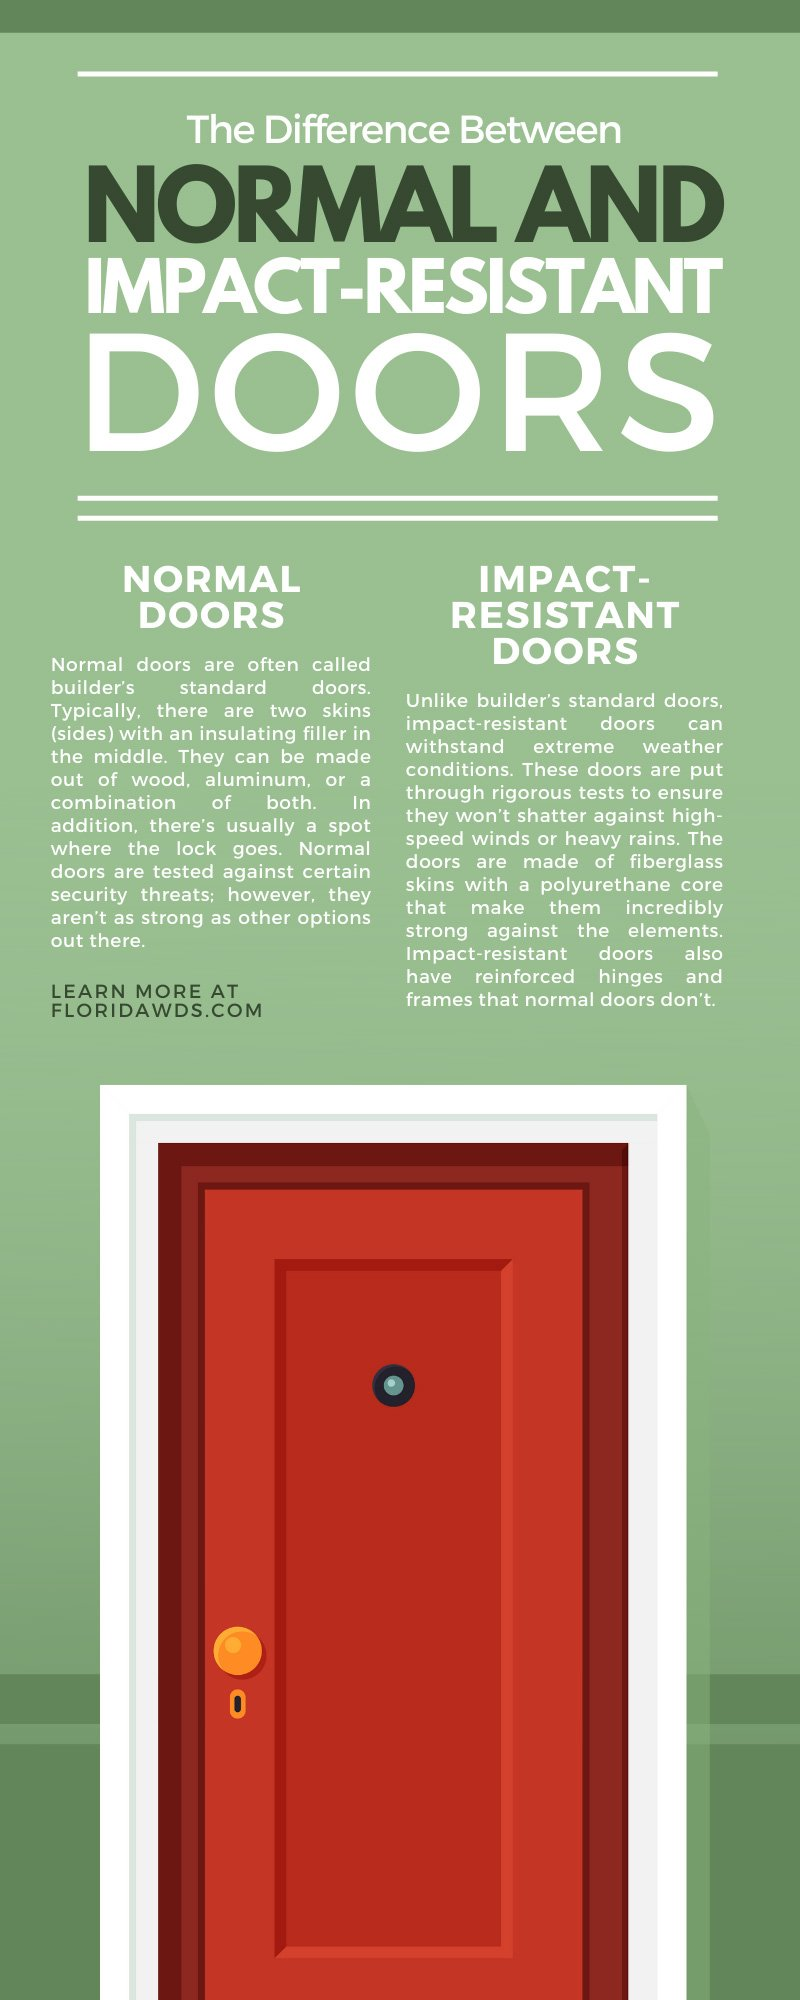 The Difference Between Normal and Impact-Resistant Doors